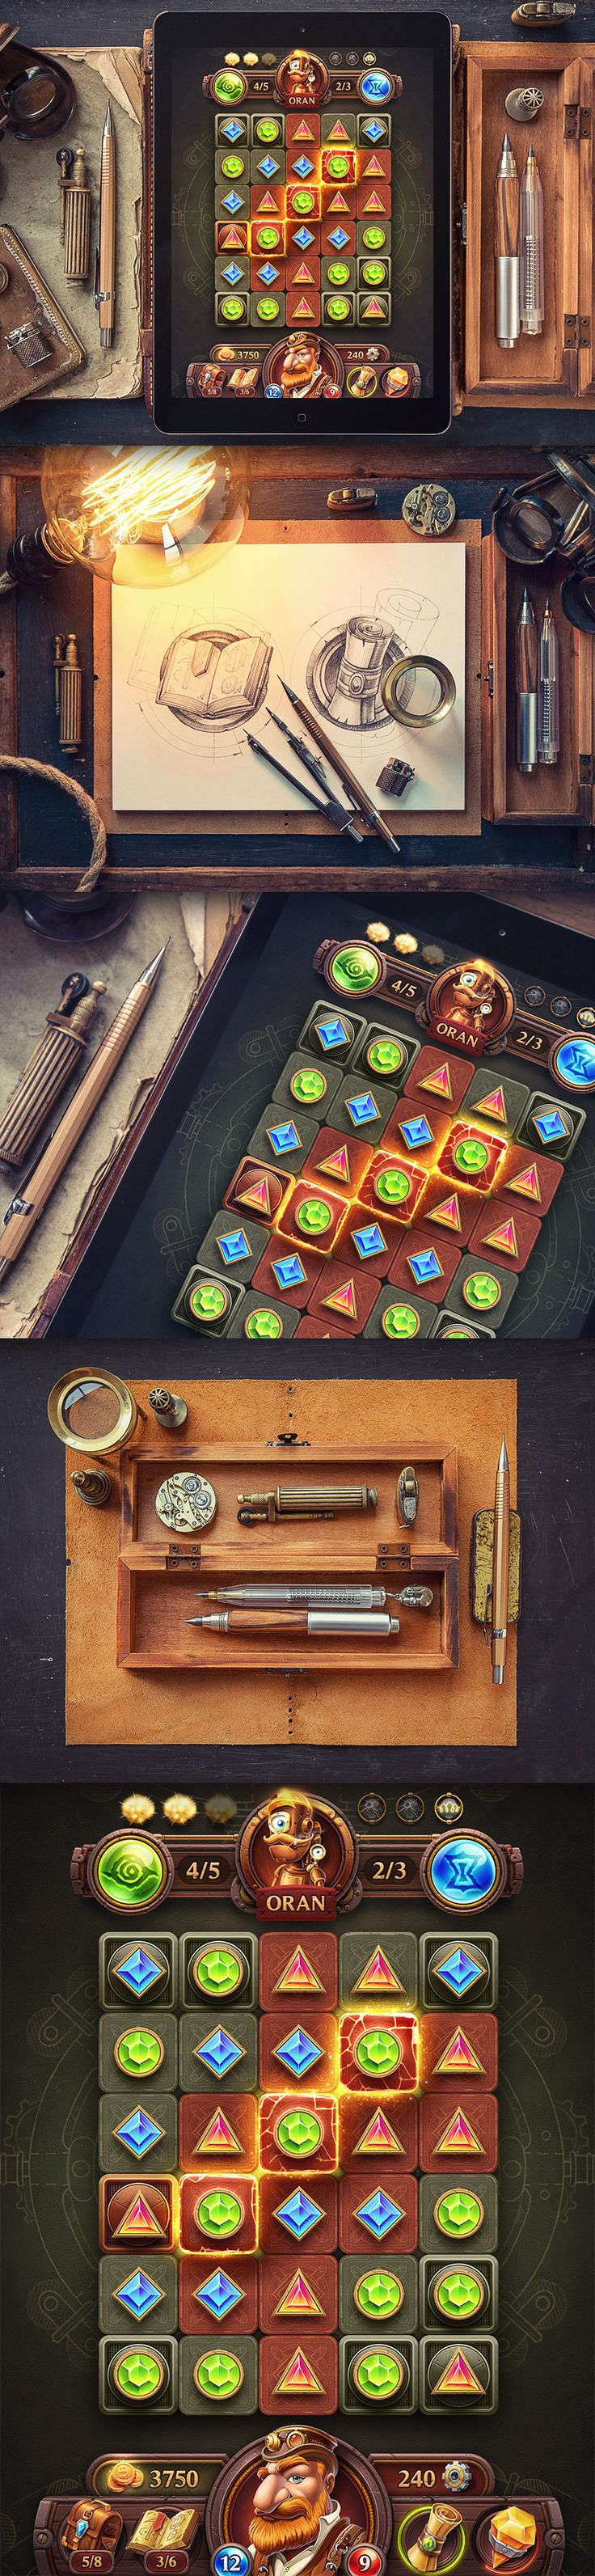 iOS Games   Part 4 on Behance